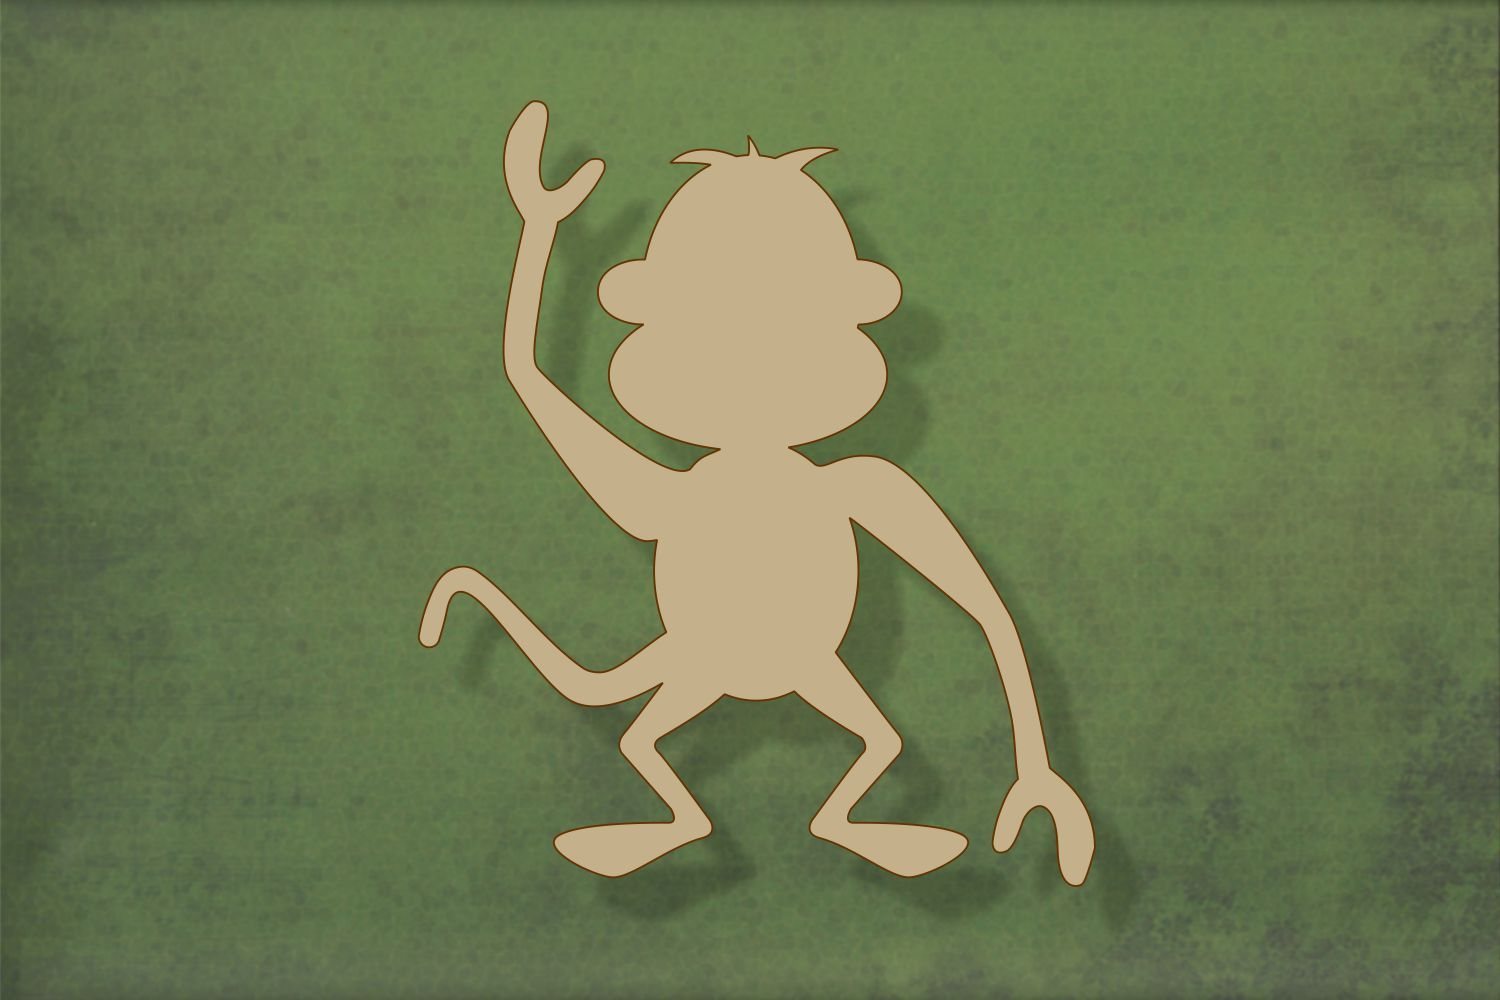 Laser cut, blank wooden Monkey shape for craft